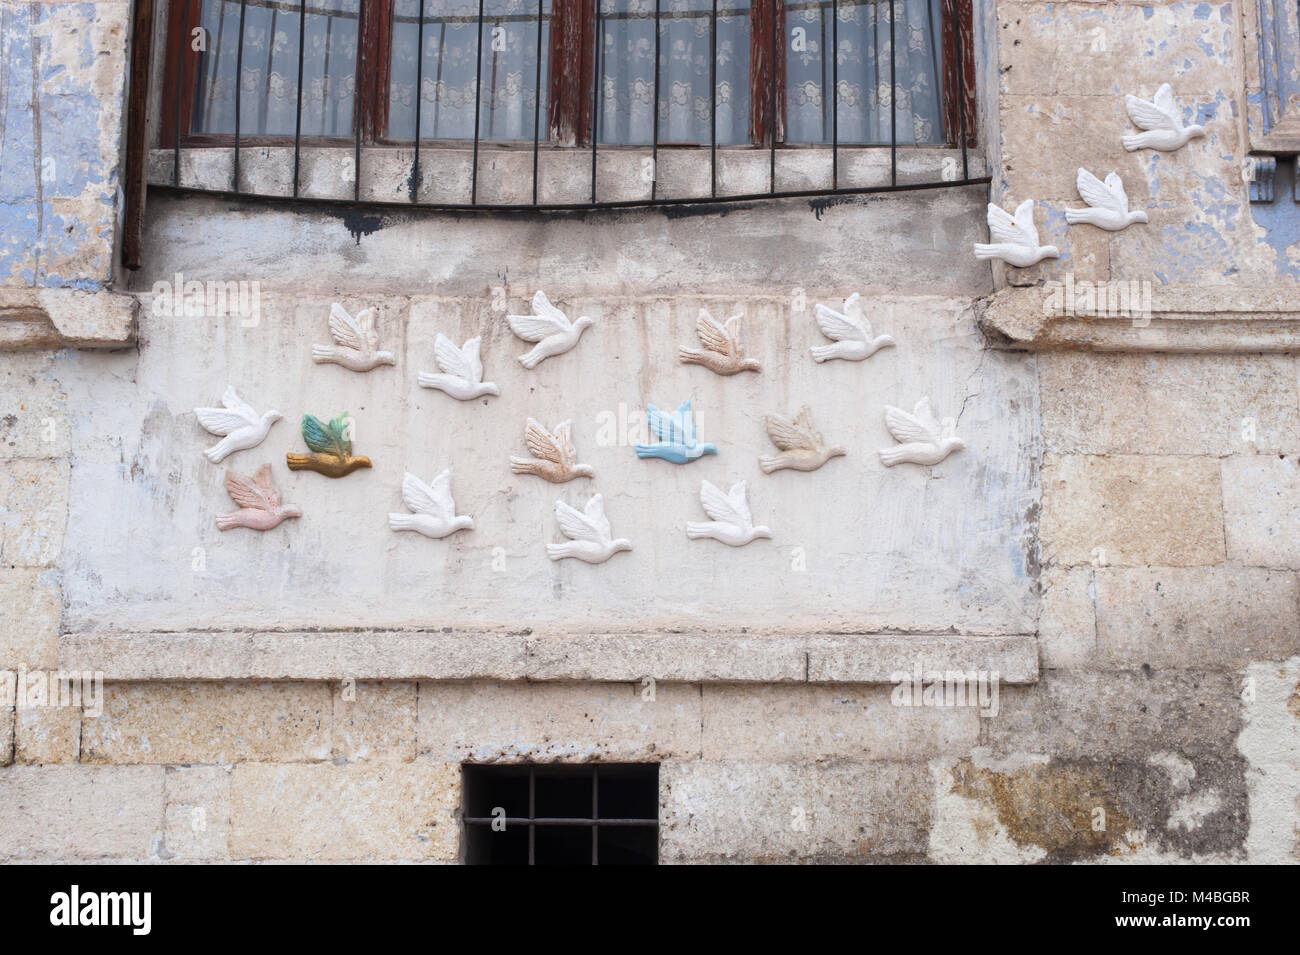 Birds decorate the outside of a building in Turkey. - Stock Image